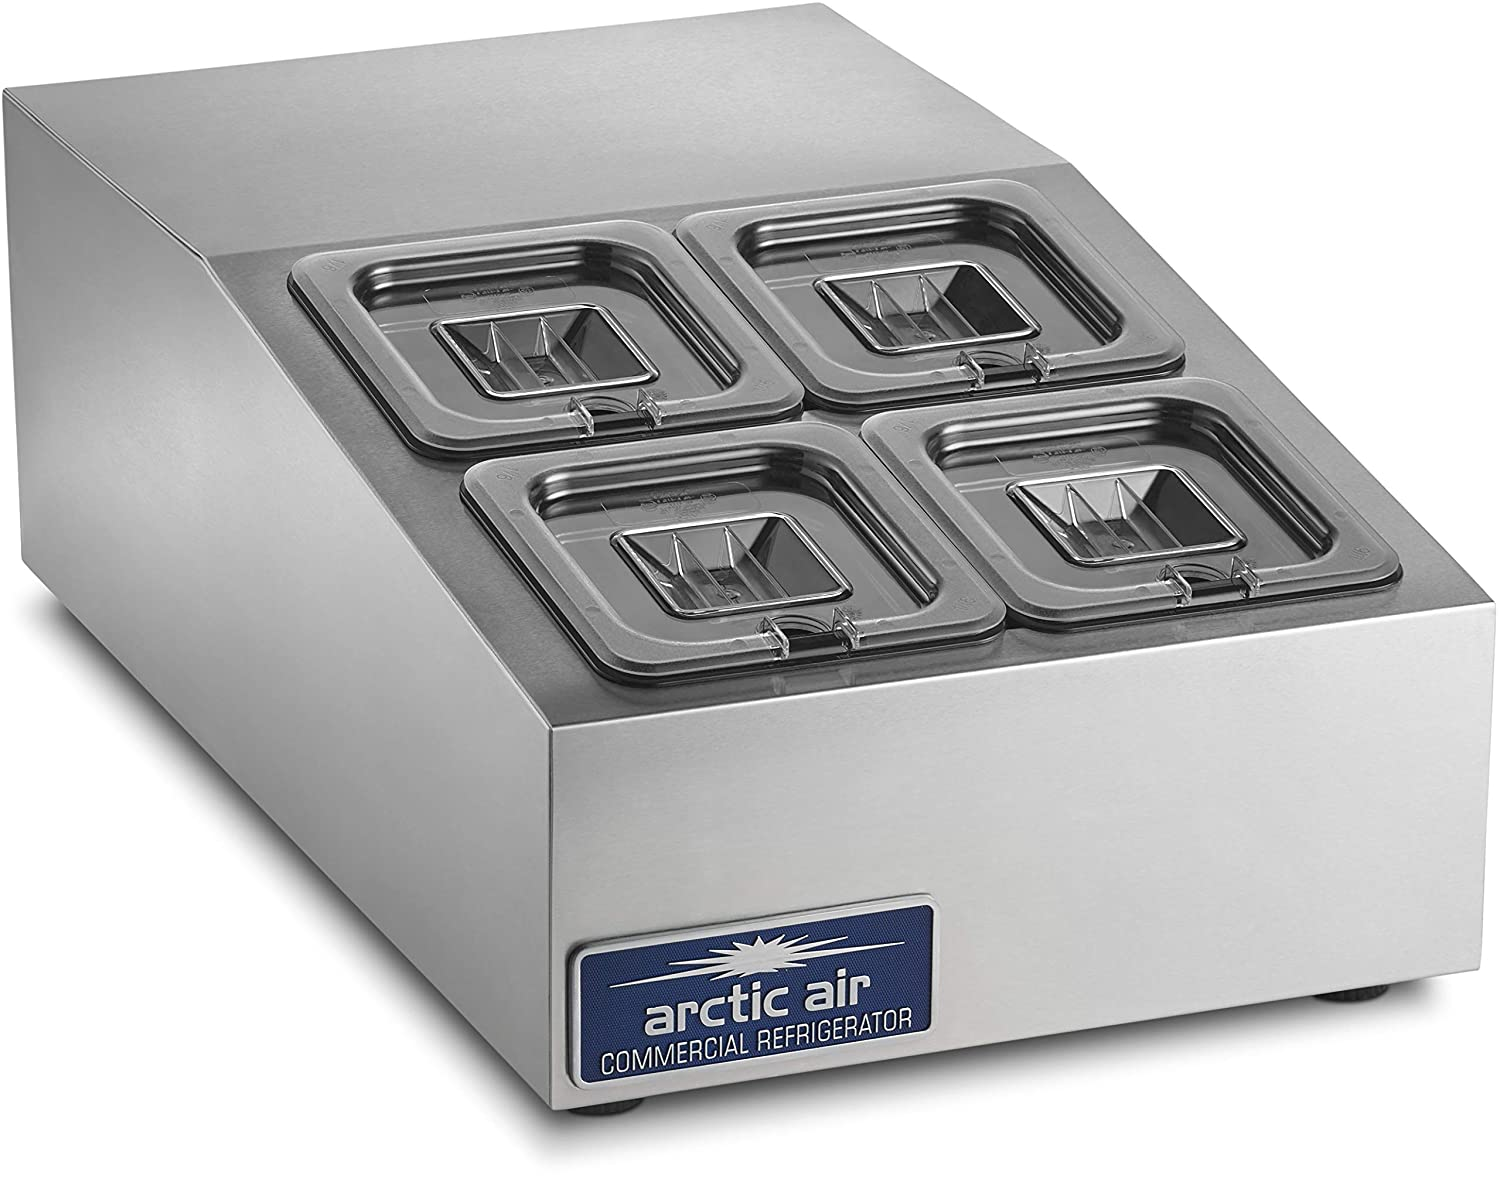 Arctic Air ACP4SQ Compact Refrigerated Counter-Top Prep Unit with (4) 1/6 Stainless Pans & Covers Silver 819iOUchc6L._SL1500_